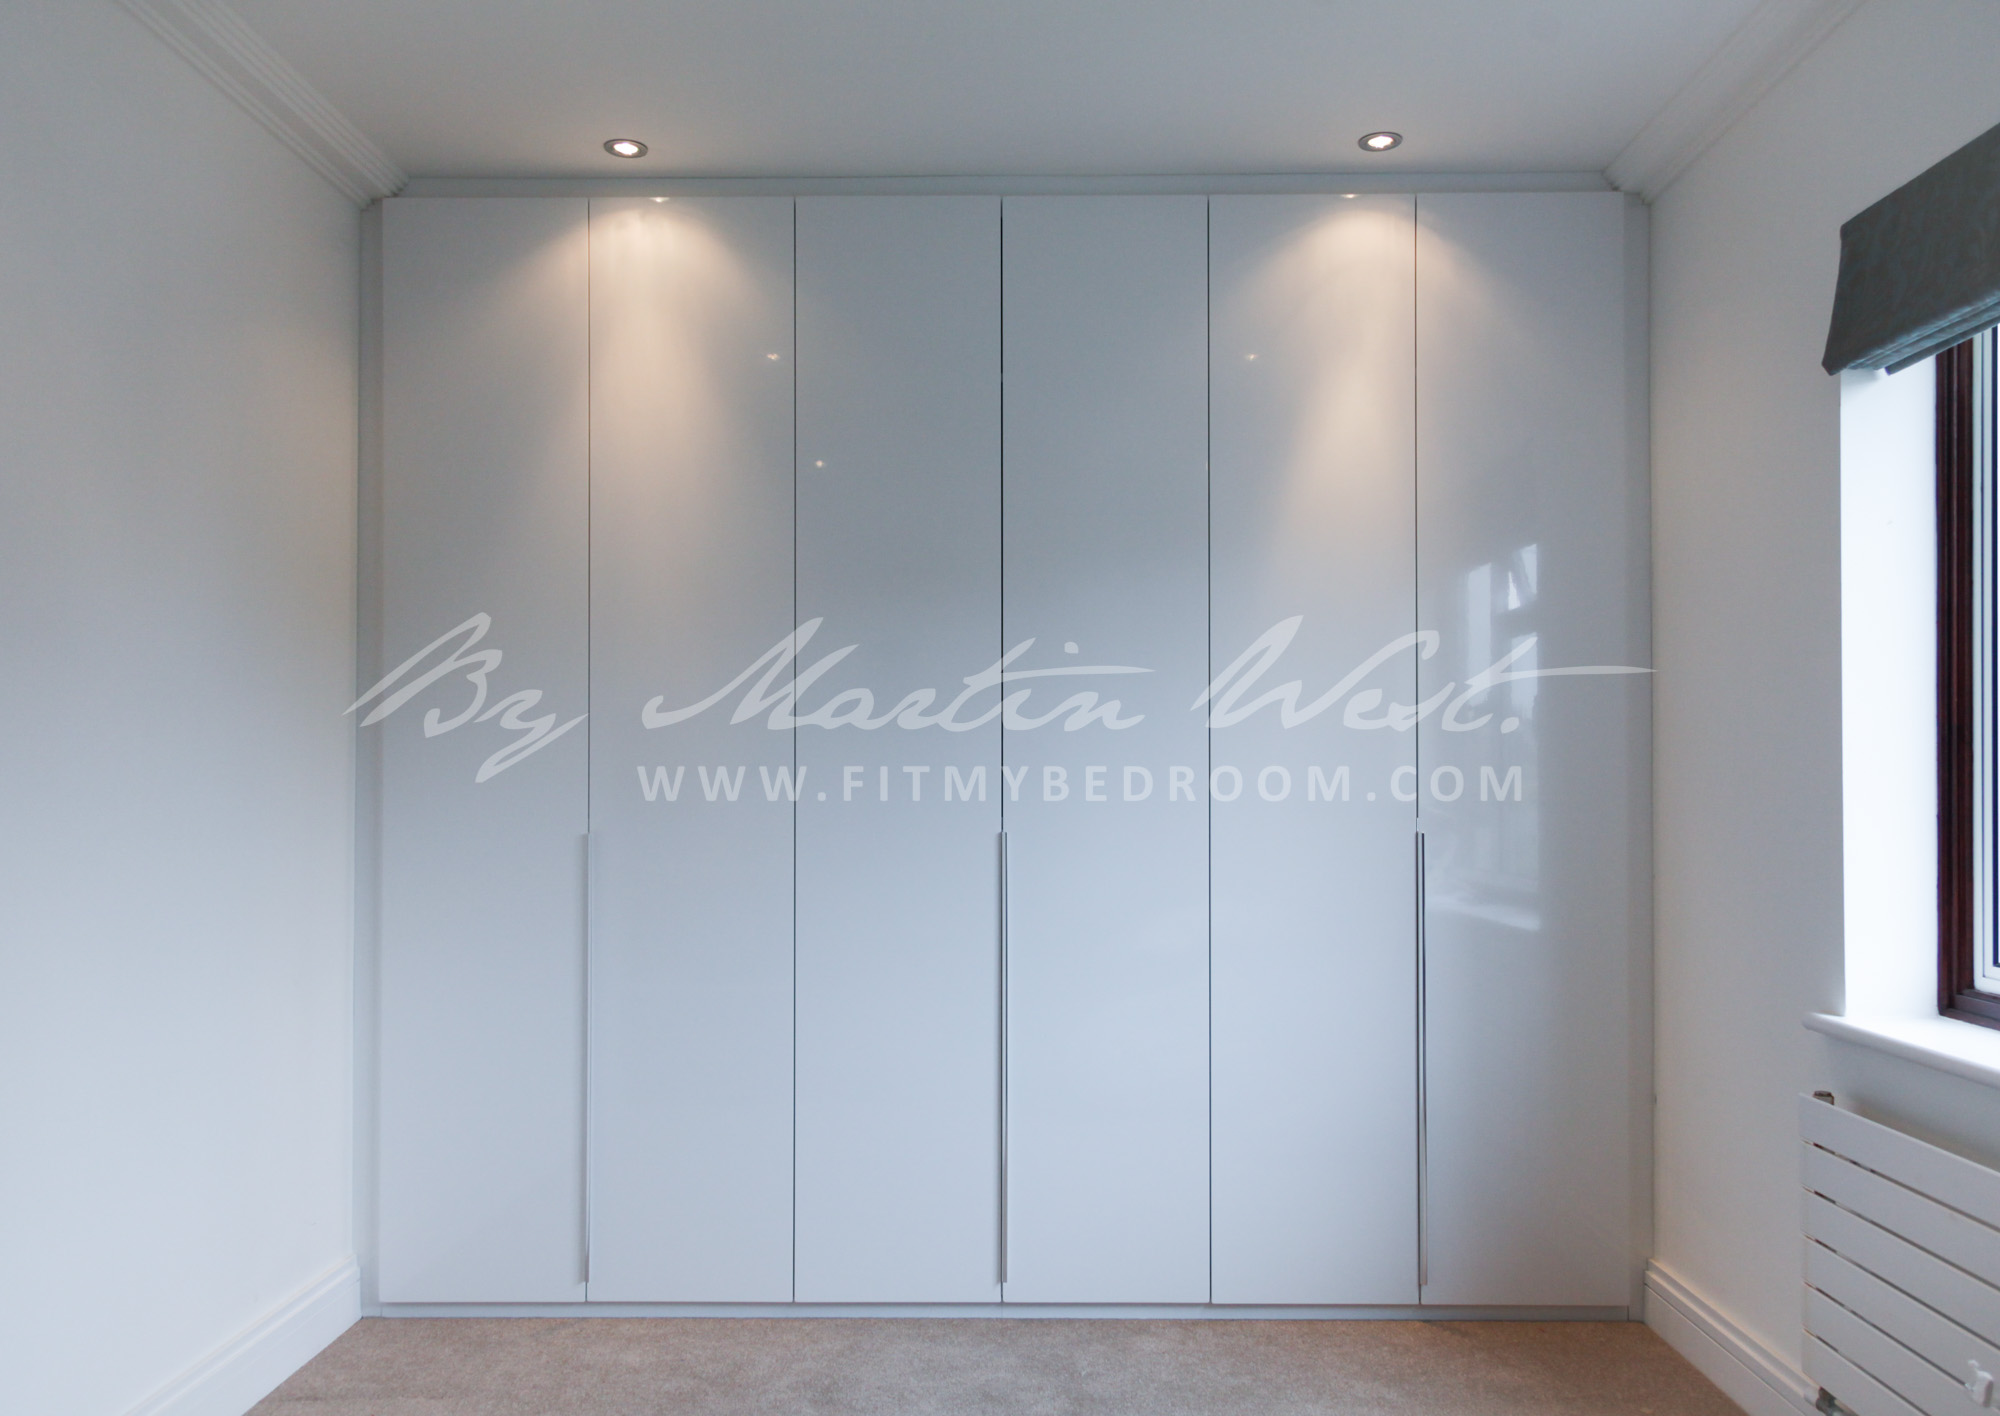 Fitted Wardrobes In Berkshire Martin West Interiors - Fitted wardrobes